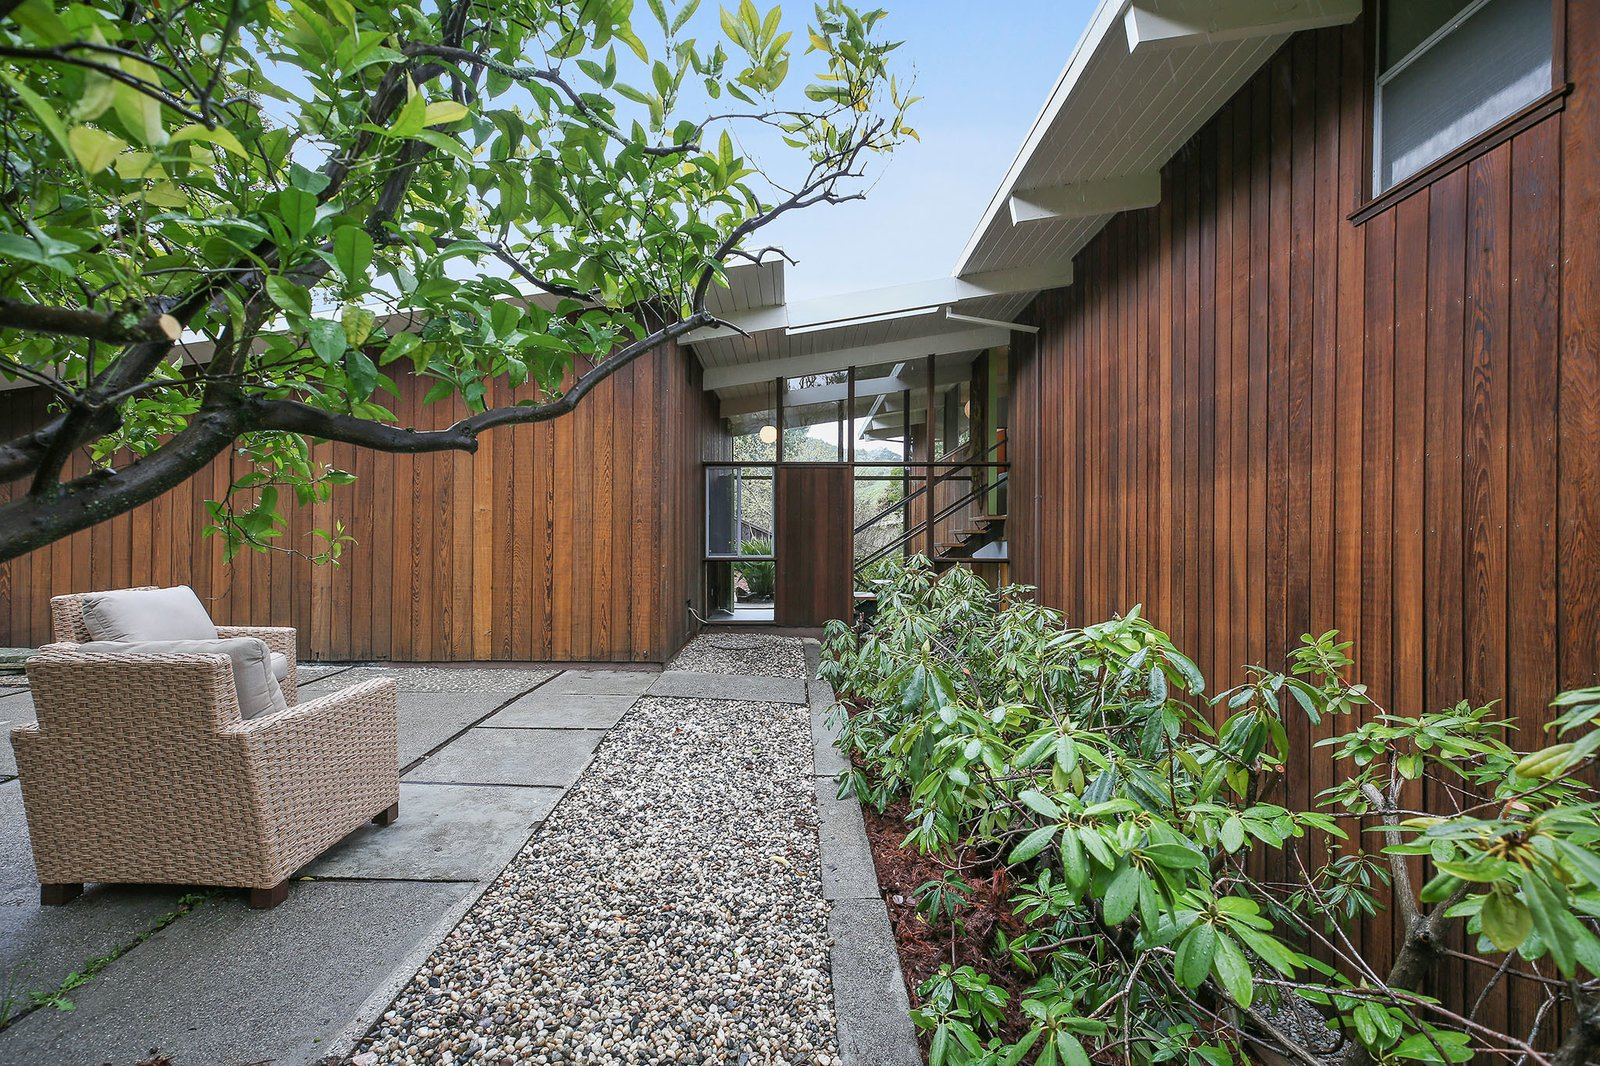 The home has a strong connection to the outdoors, despite missing the central a